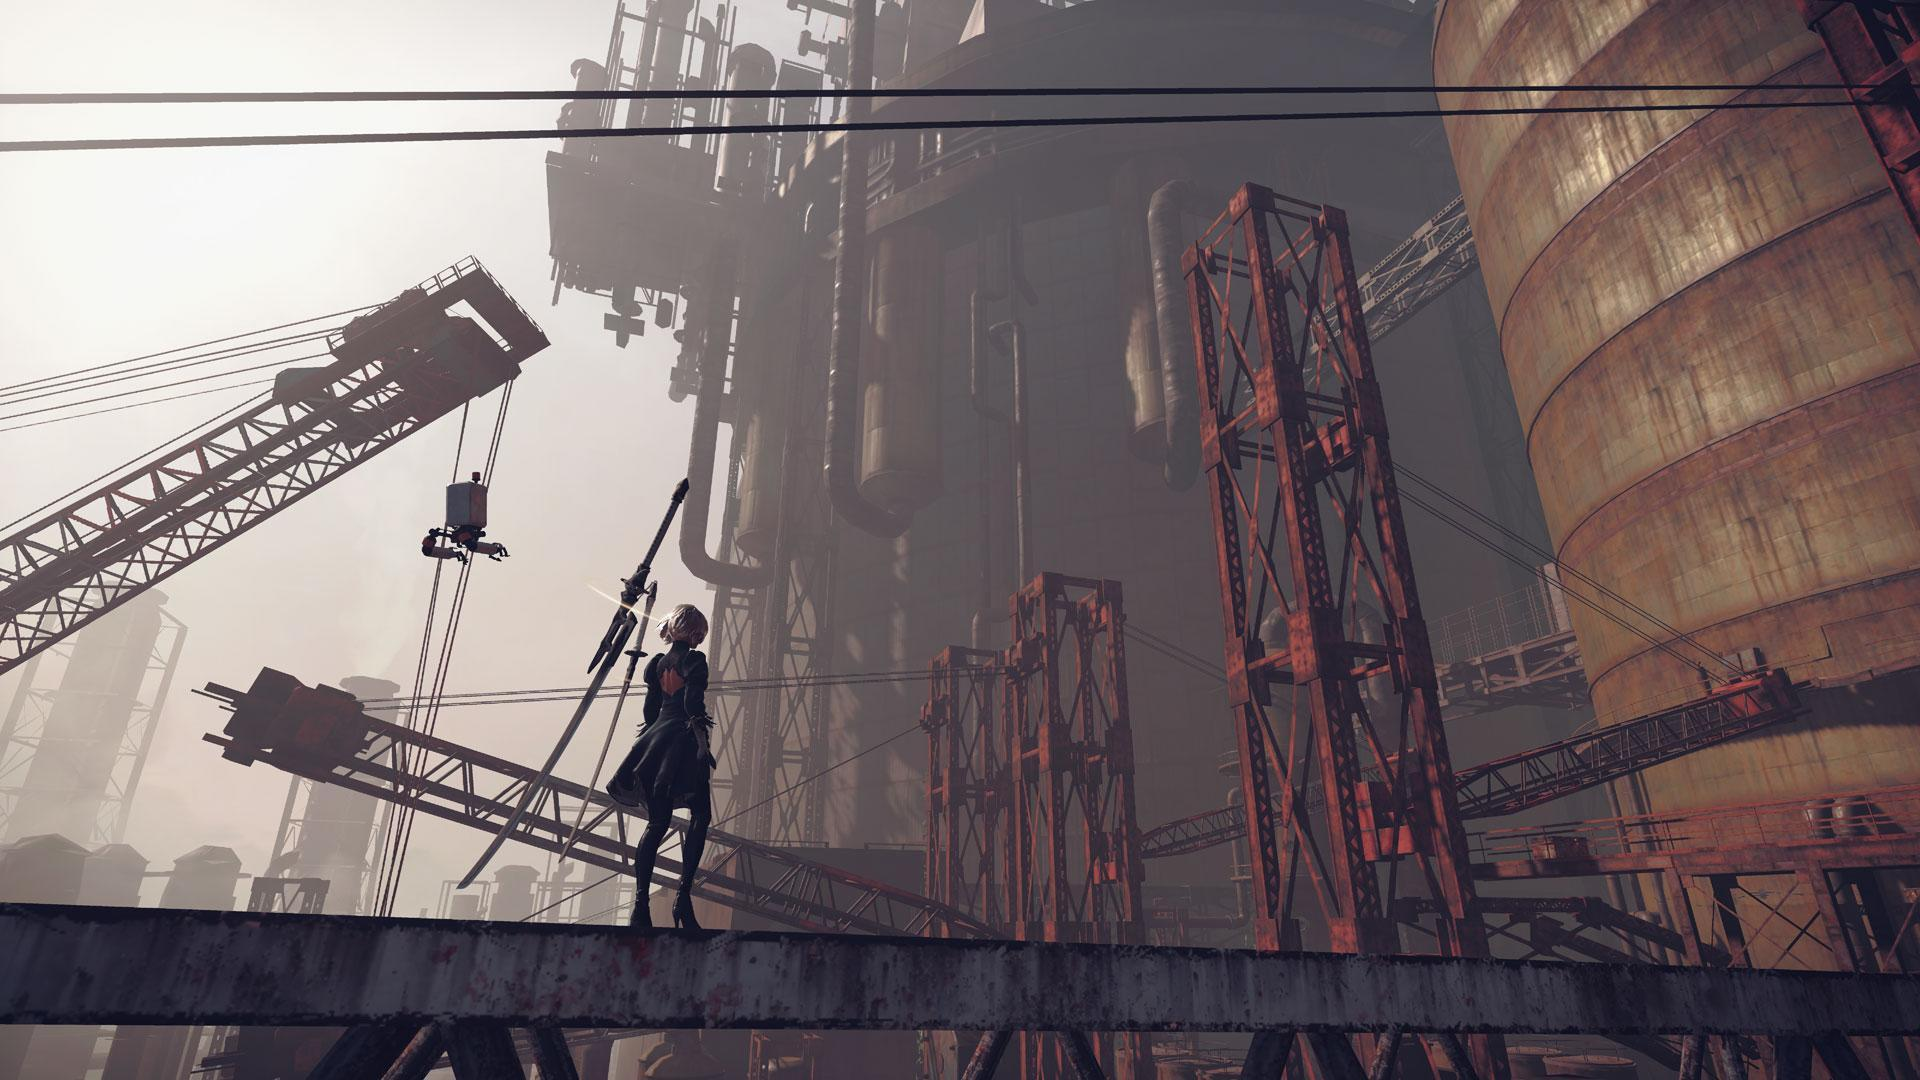 'NieR Automata' centers on 2B, a combat android fighting a mysterious robot army.